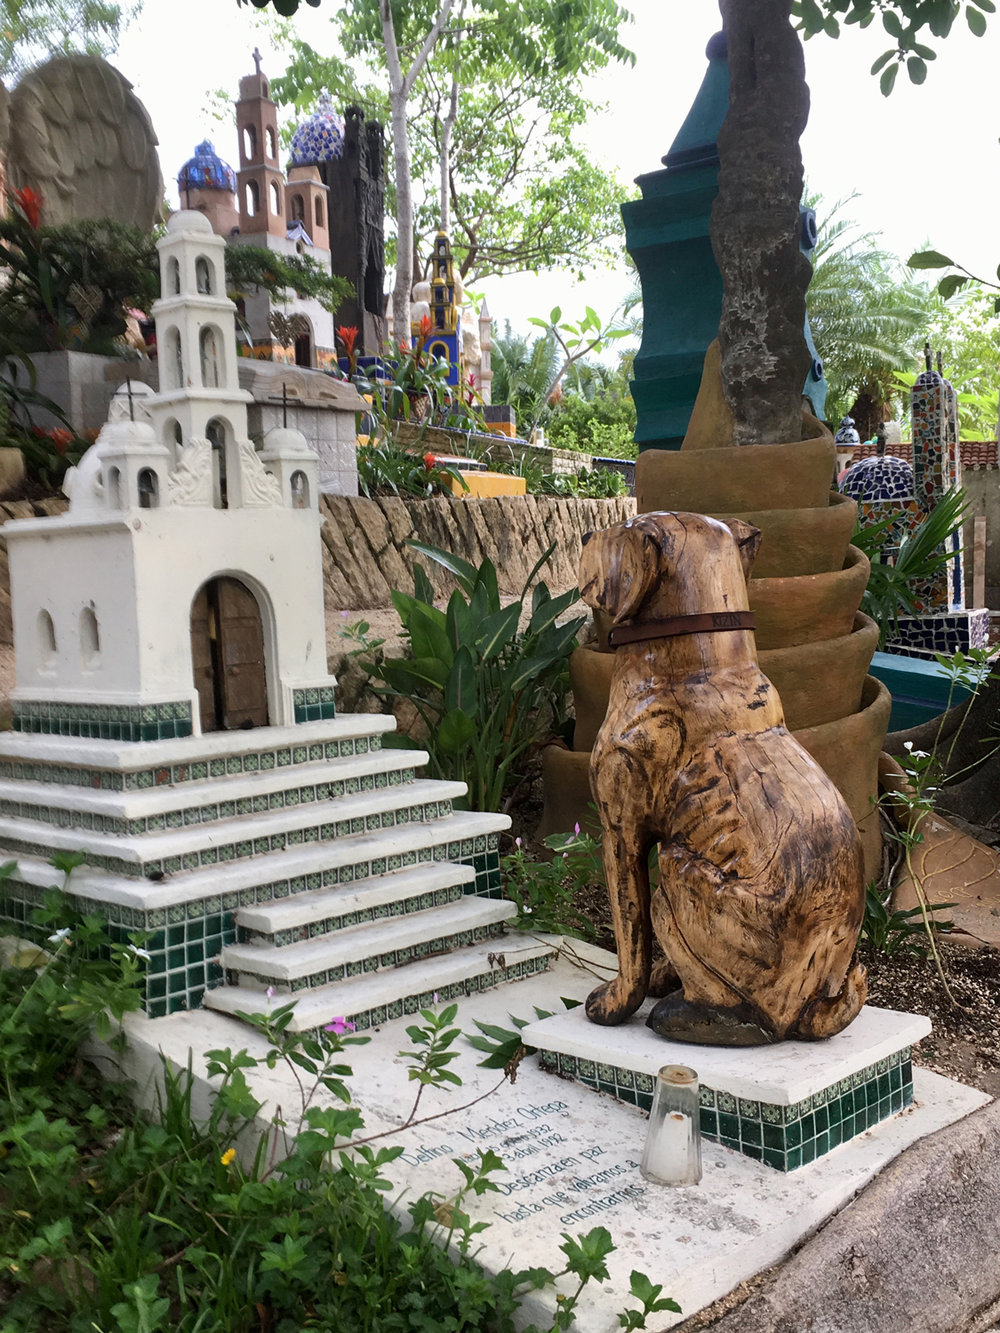 In ancient times, a dog was buried with his master. Today he has a sculpture at the cemetery instead.